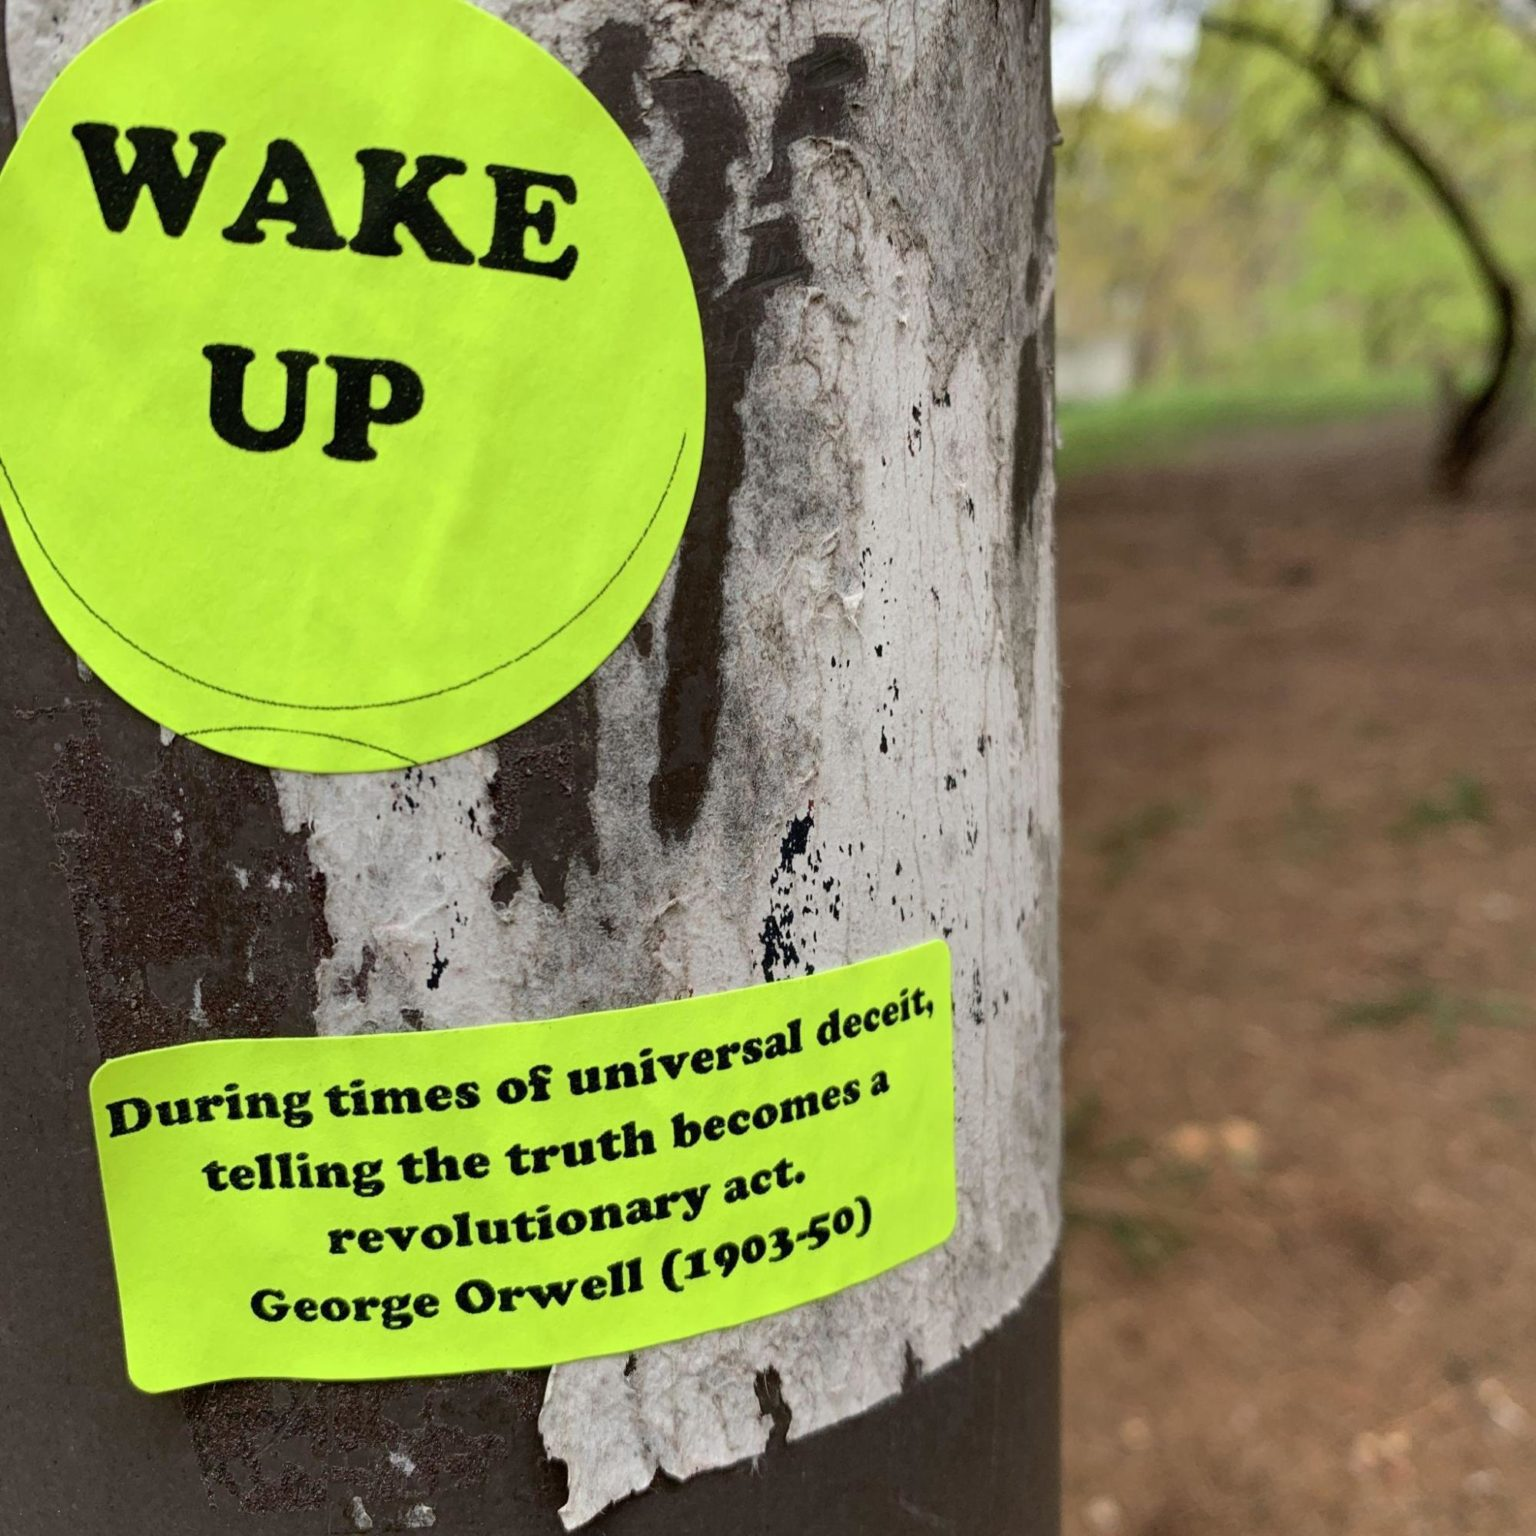 picture of two green stickers on a tree saying 'wake up' and 'during times of universal deceit, telling the truth becomes a revolutionary act - George Orwell (1903-50)'